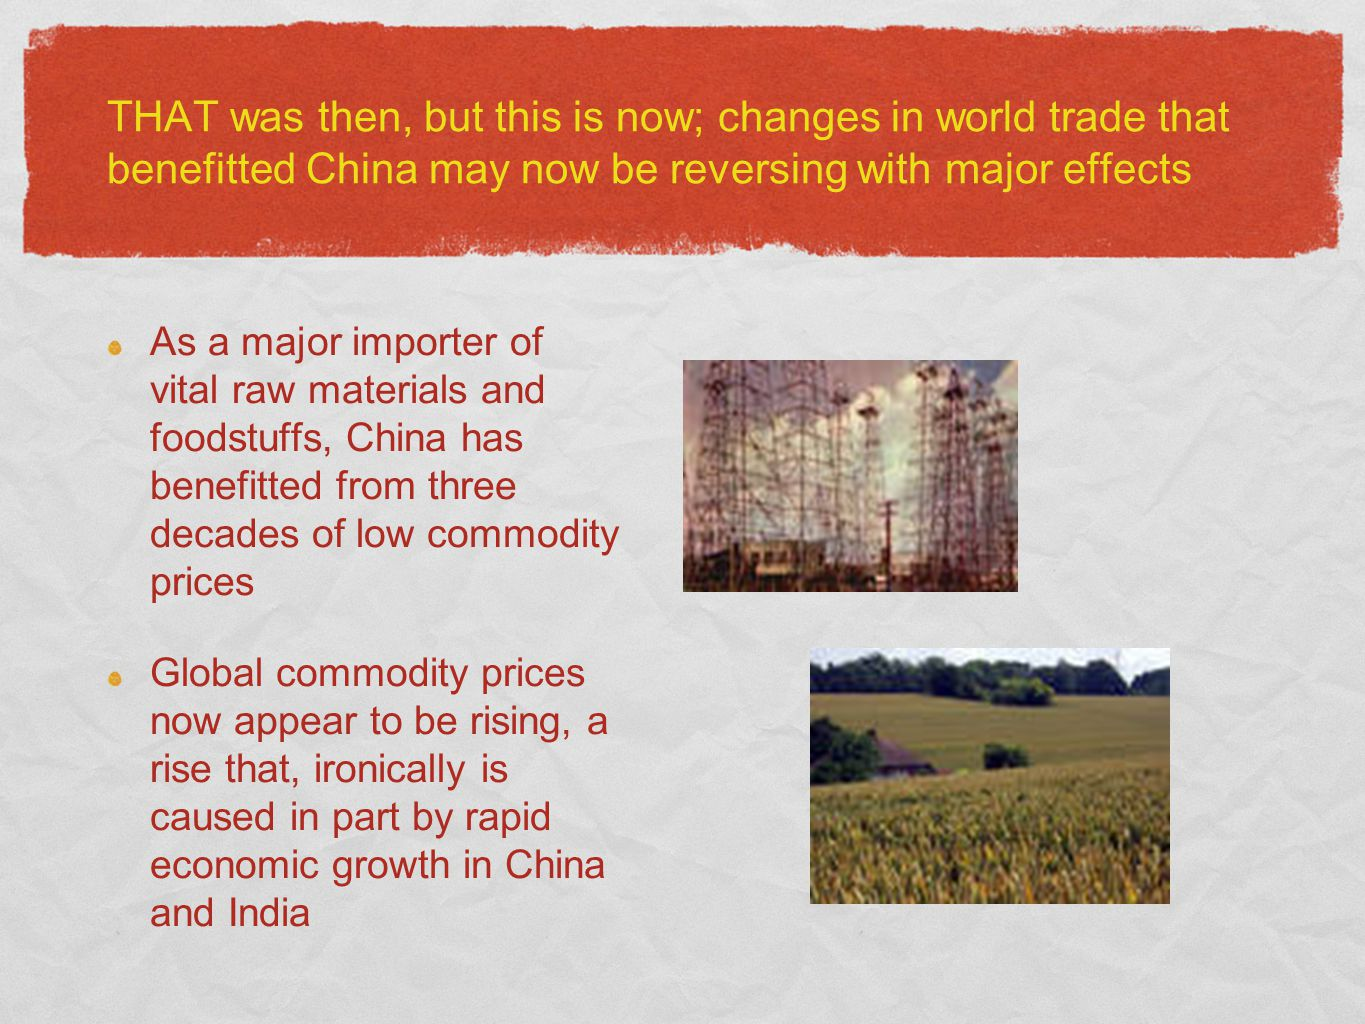 THAT was then, but this is now; changes in world trade that benefitted China may now be reversing with major effects As a major importer of vital raw materials and foodstuffs, China has benefitted from three decades of low commodity prices Global commodity prices now appear to be rising, a rise that, ironically is caused in part by rapid economic growth in China and India